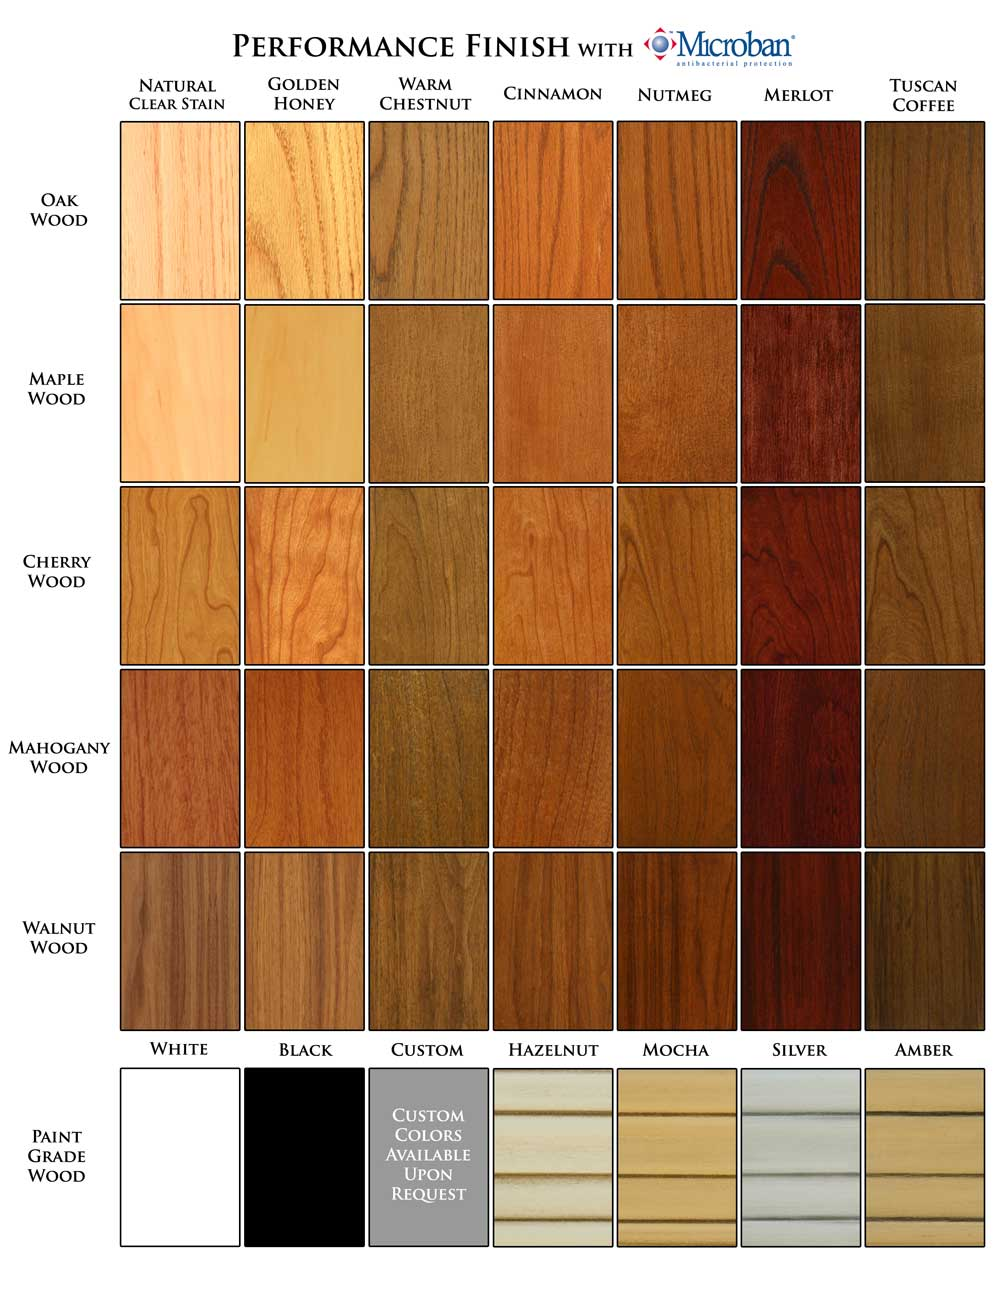 Red Mahogany Vs Red Oak Color Comparison  Google Search  House